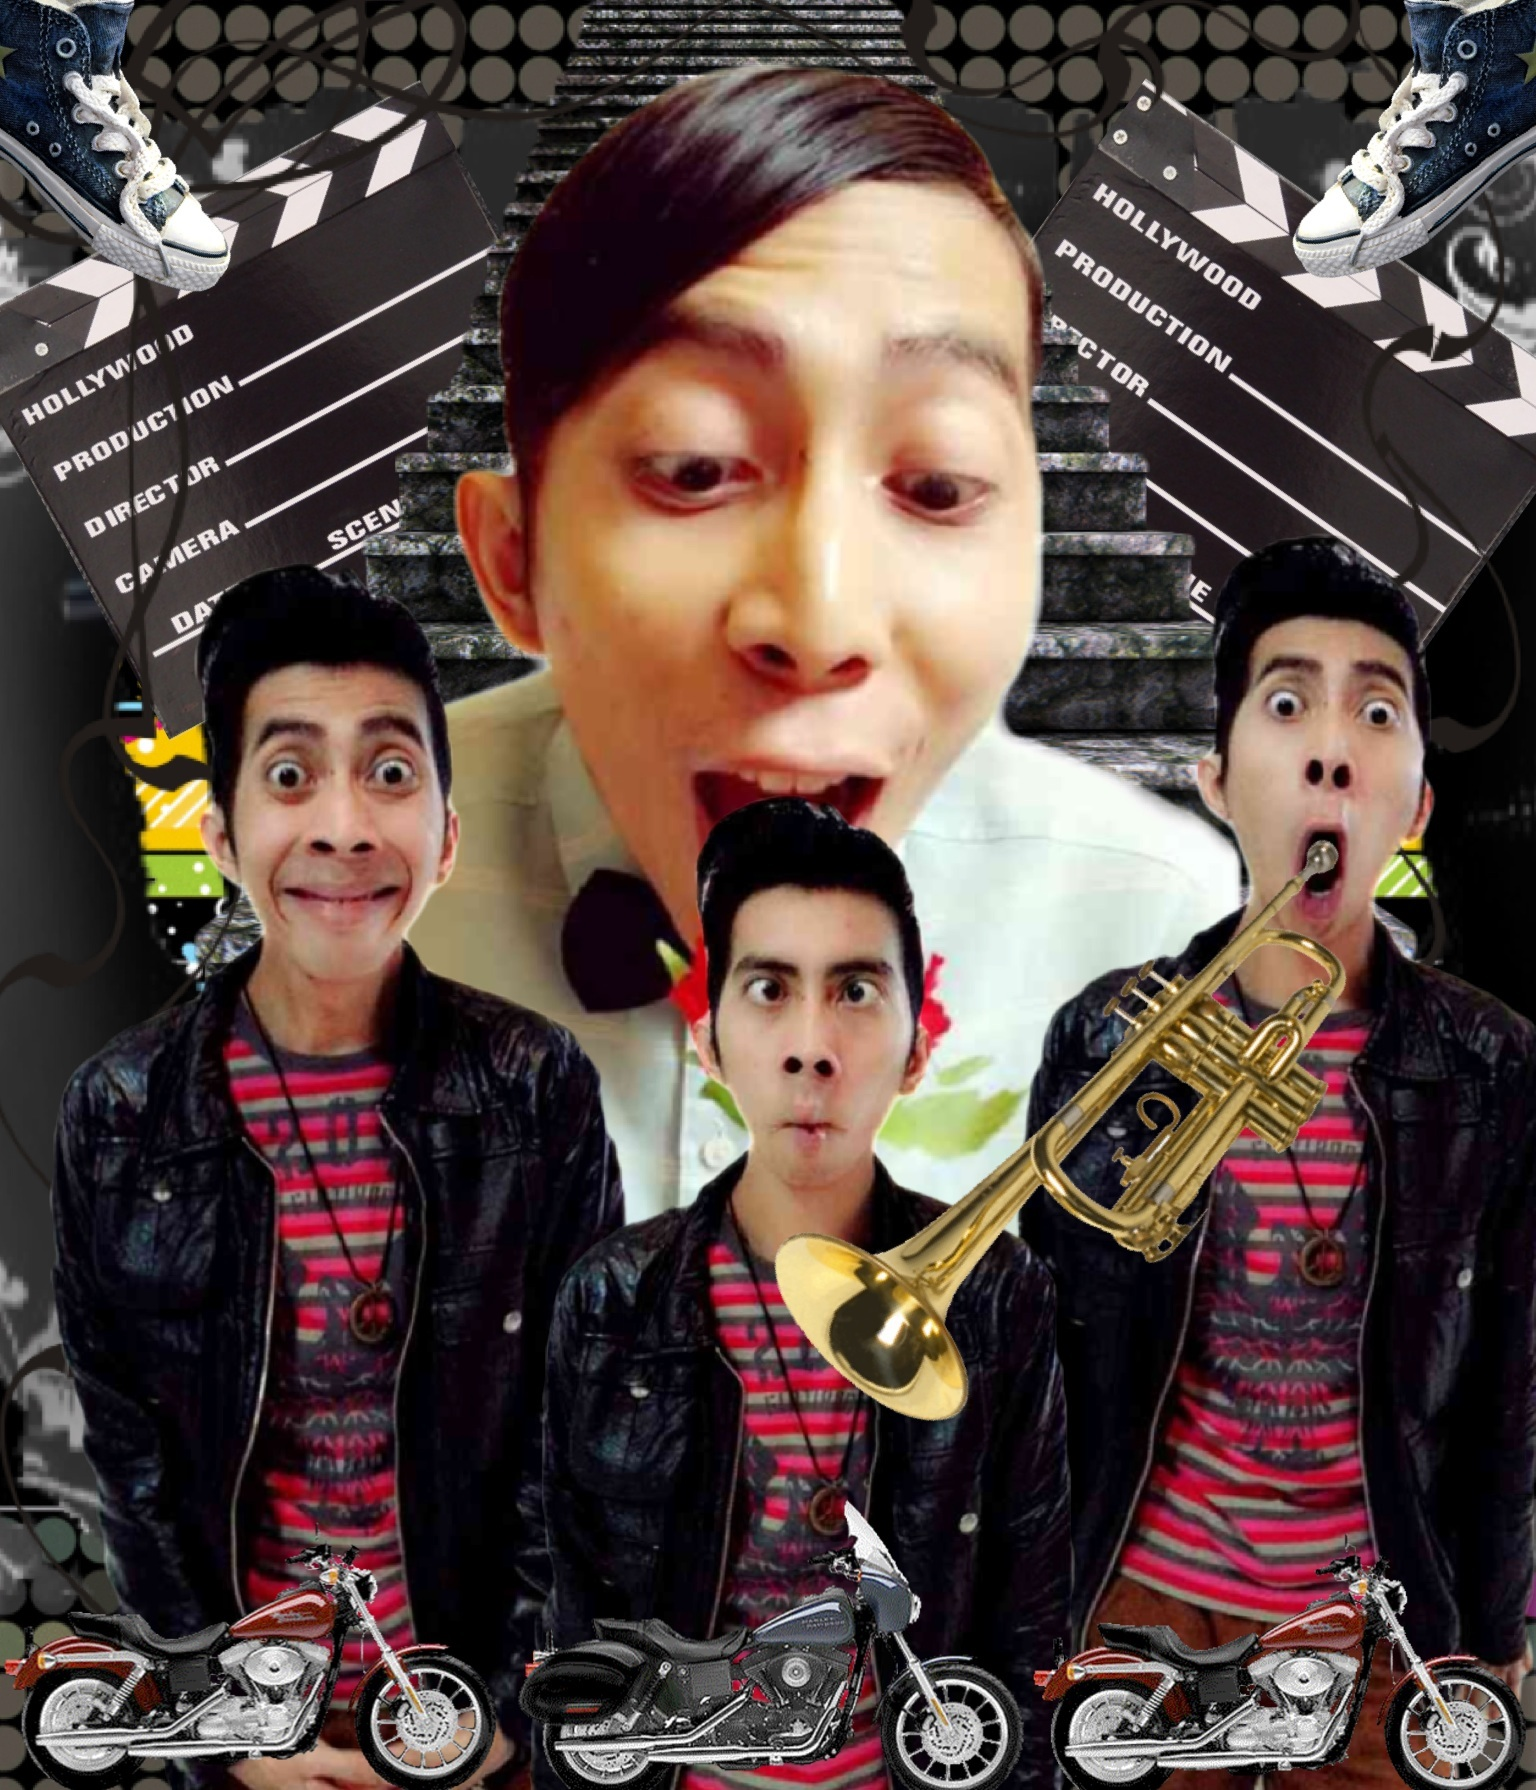 A gift for my friend, he's a comedian star from Indonesia, his name is Bacun...LOL ❤